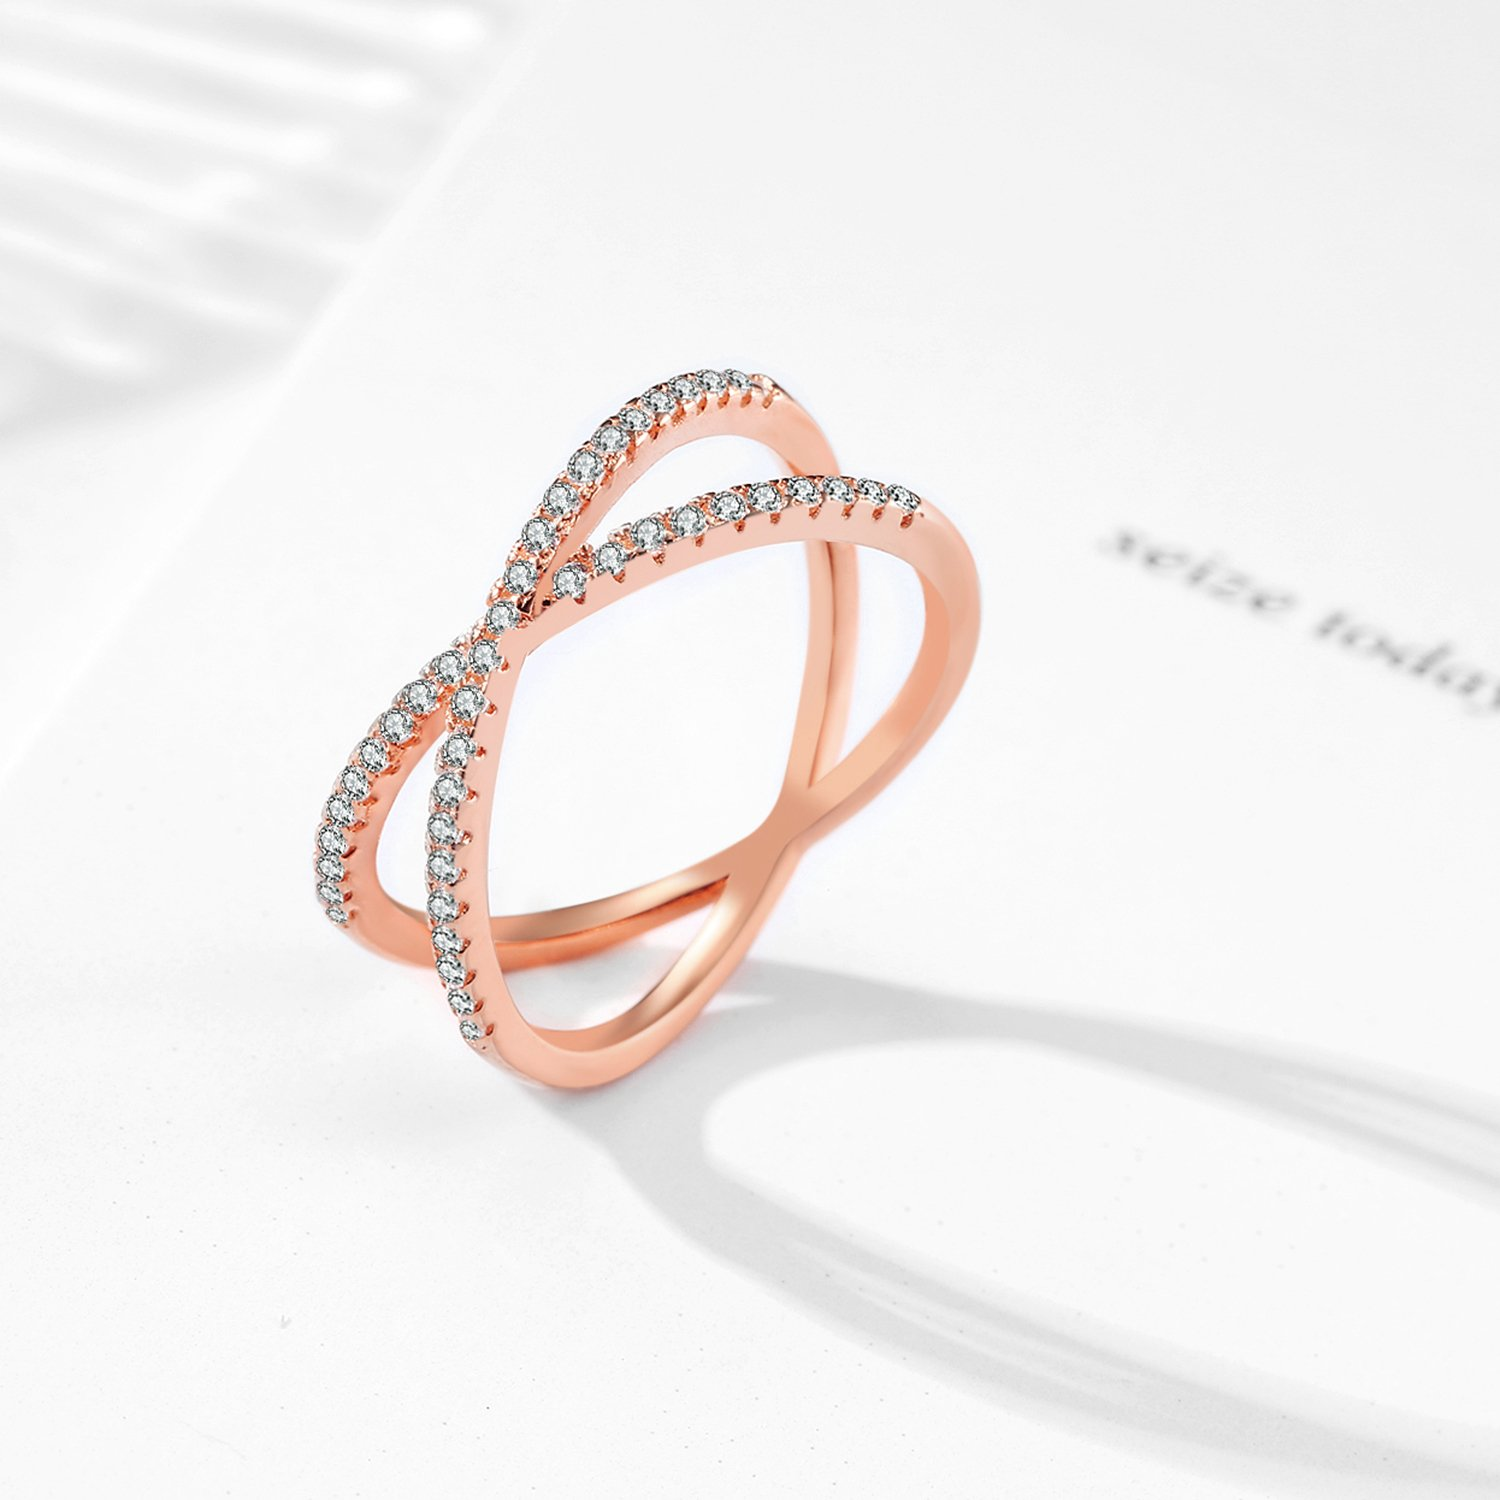 X Ring Sterling Silver, Cubic Zirconia X Criss Cross Ring Women, Size 6-8 (Rose-Gold-Plated-Silver, 7) by SISGEM (Image #4)